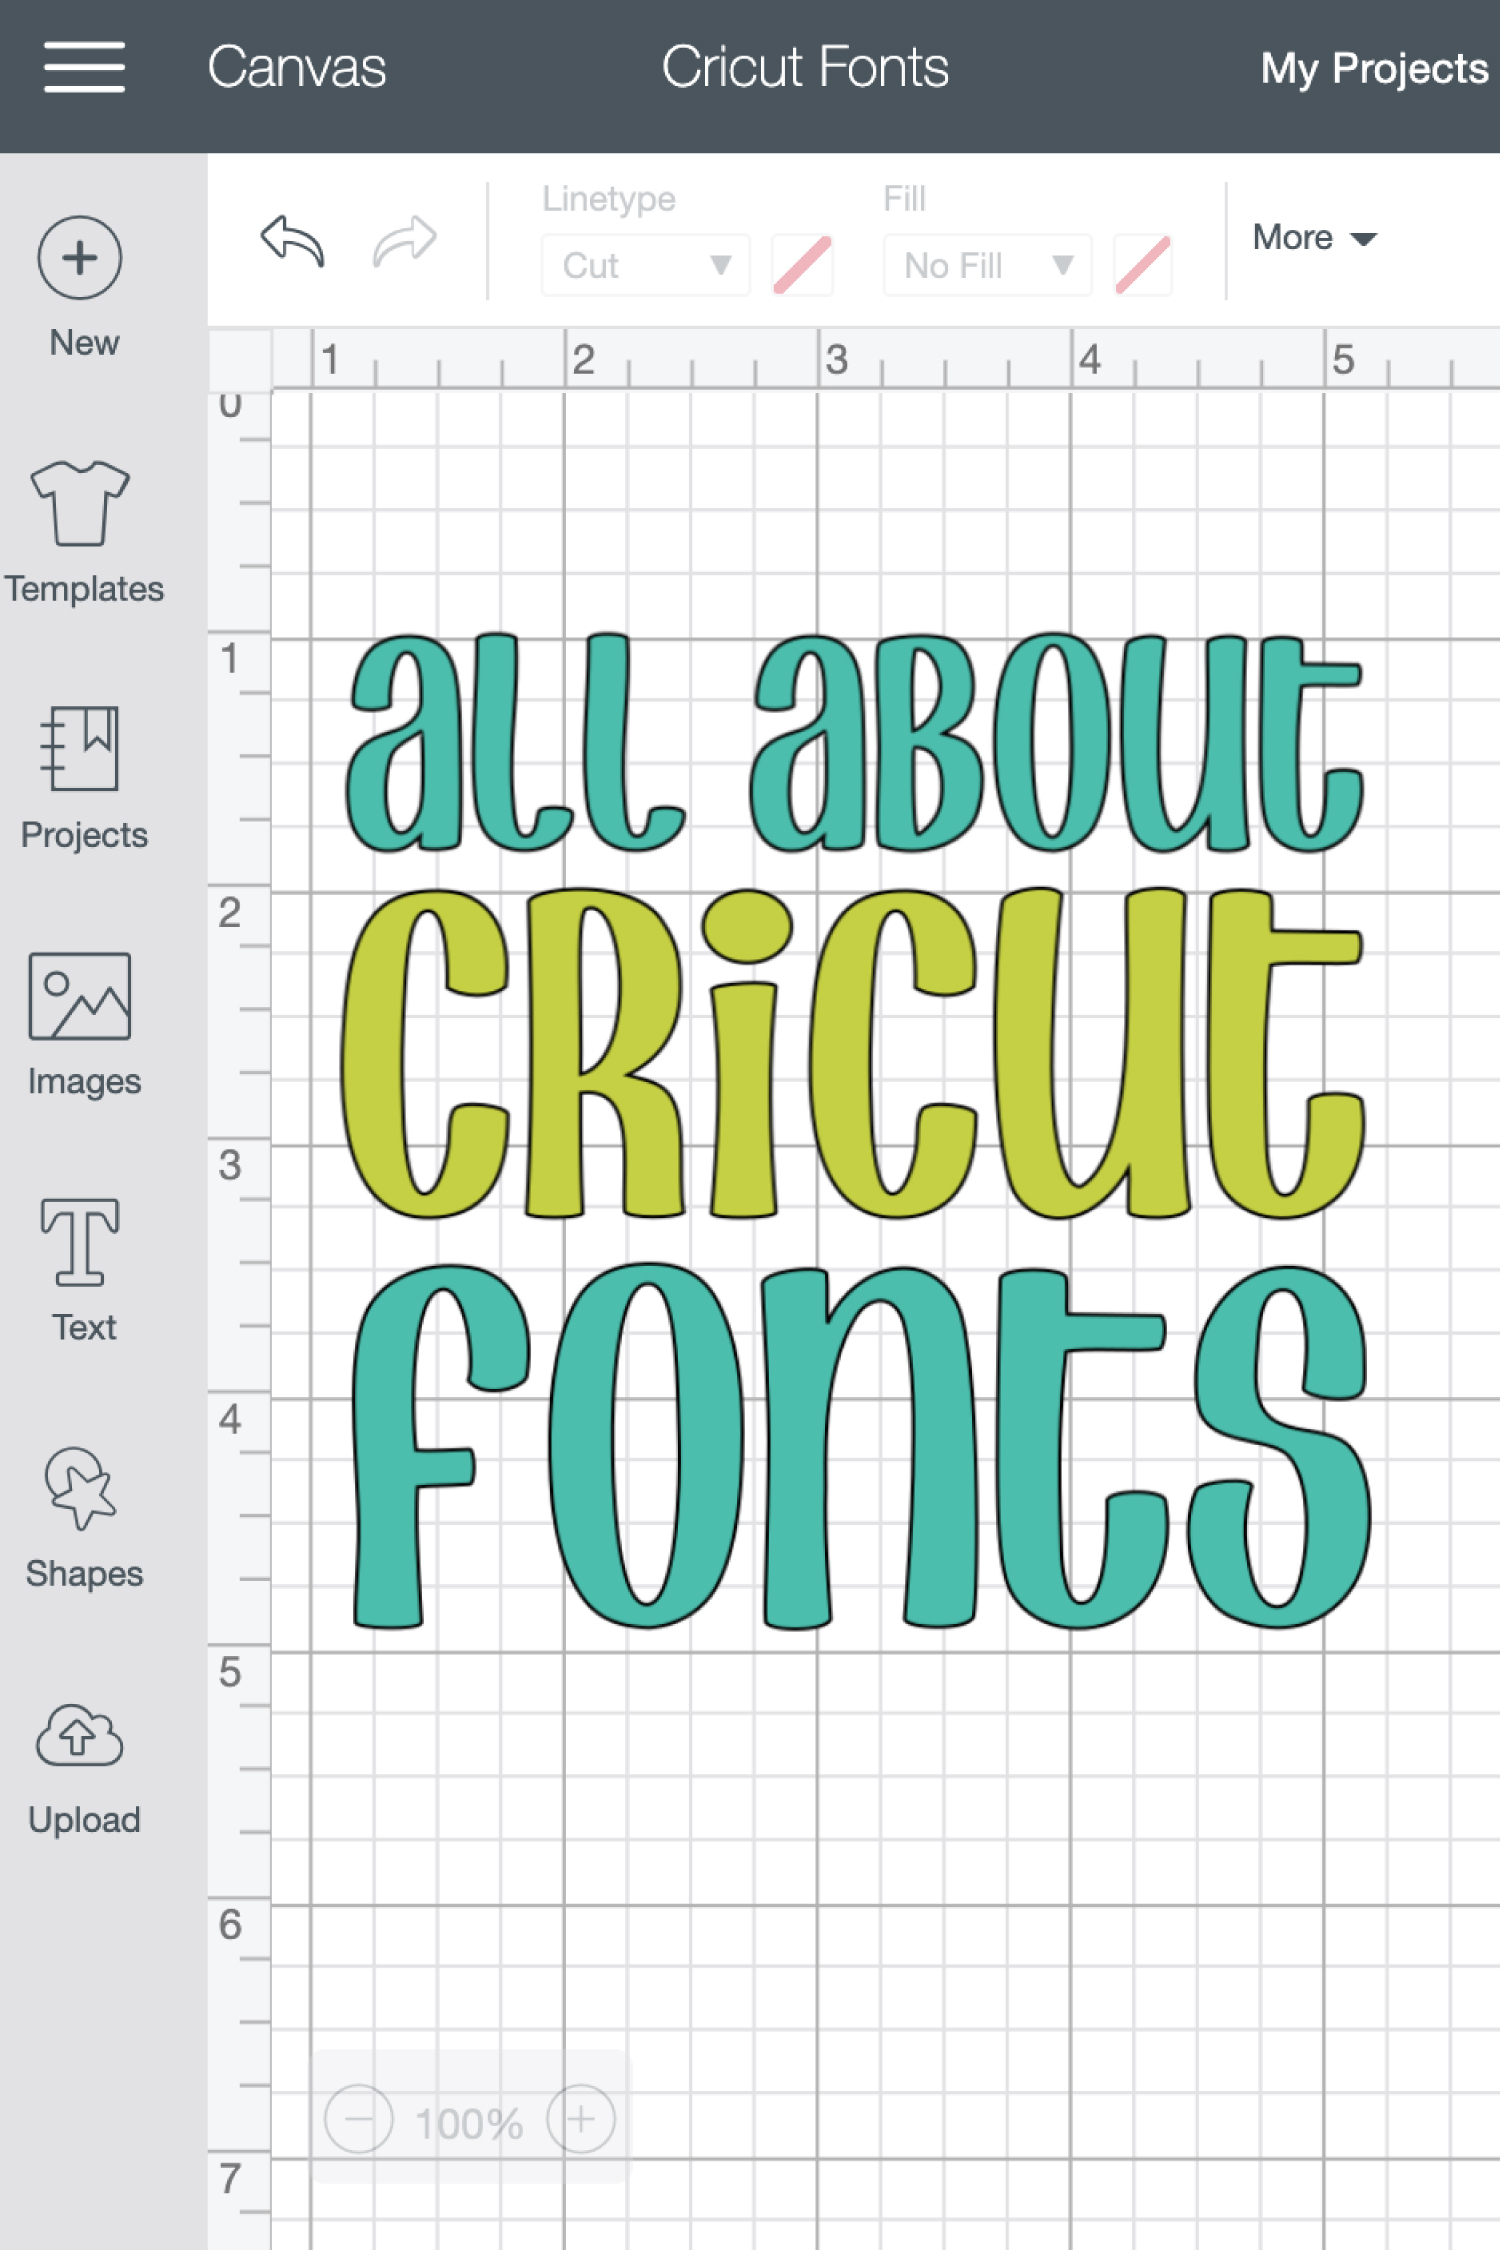 All About Cricut Design Space Fonts - Hey, Let's Make Stuff